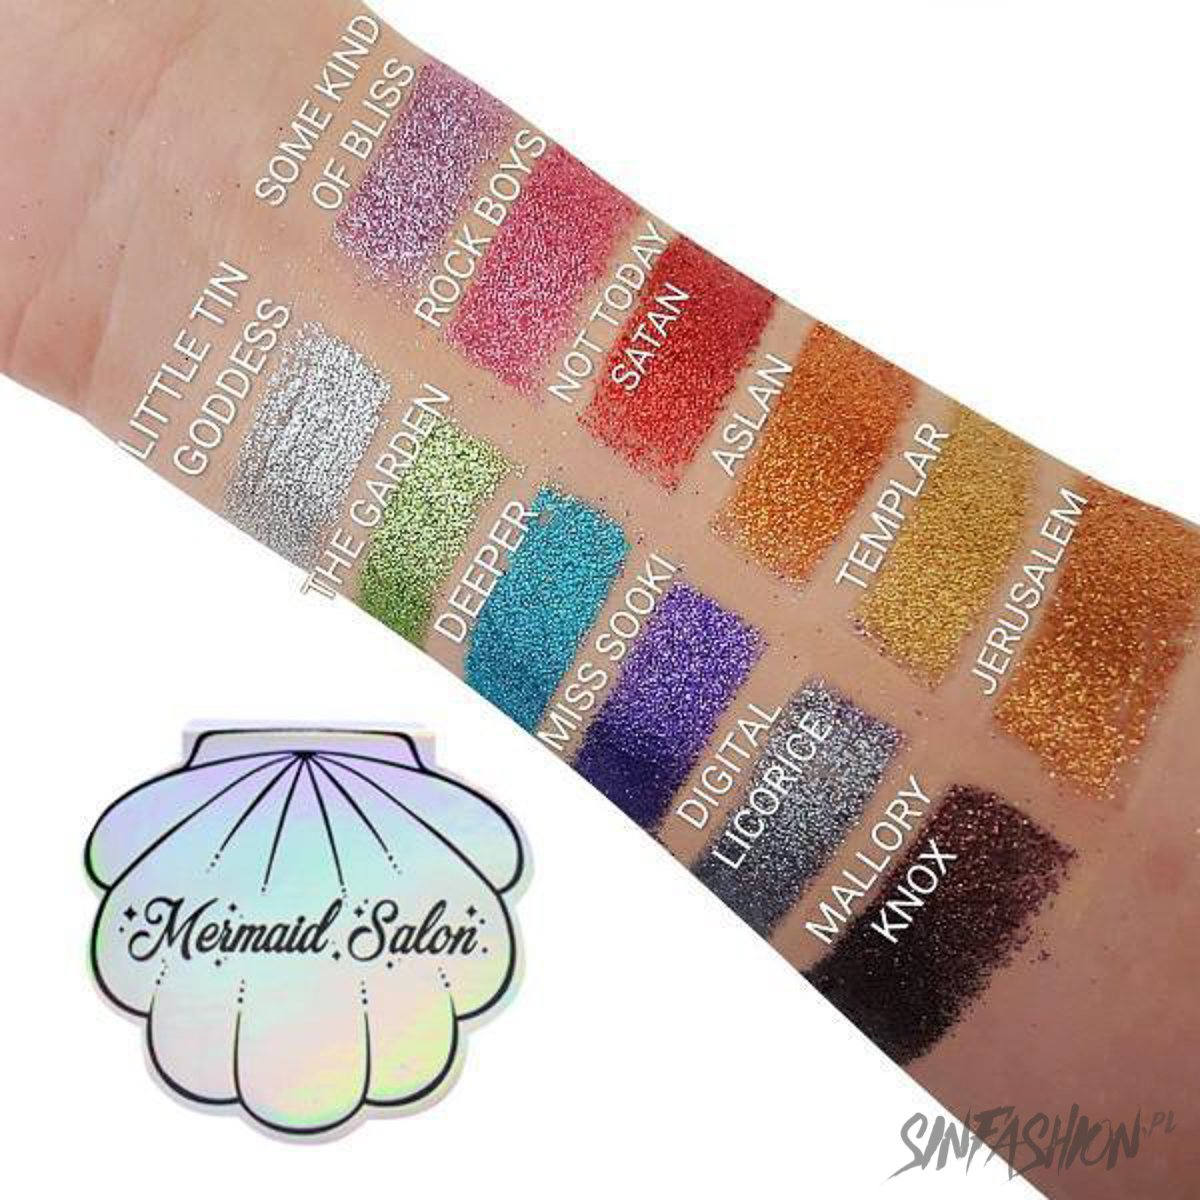 Cienie Mermaid Salon Witching Hour Chrome Flex Seashell